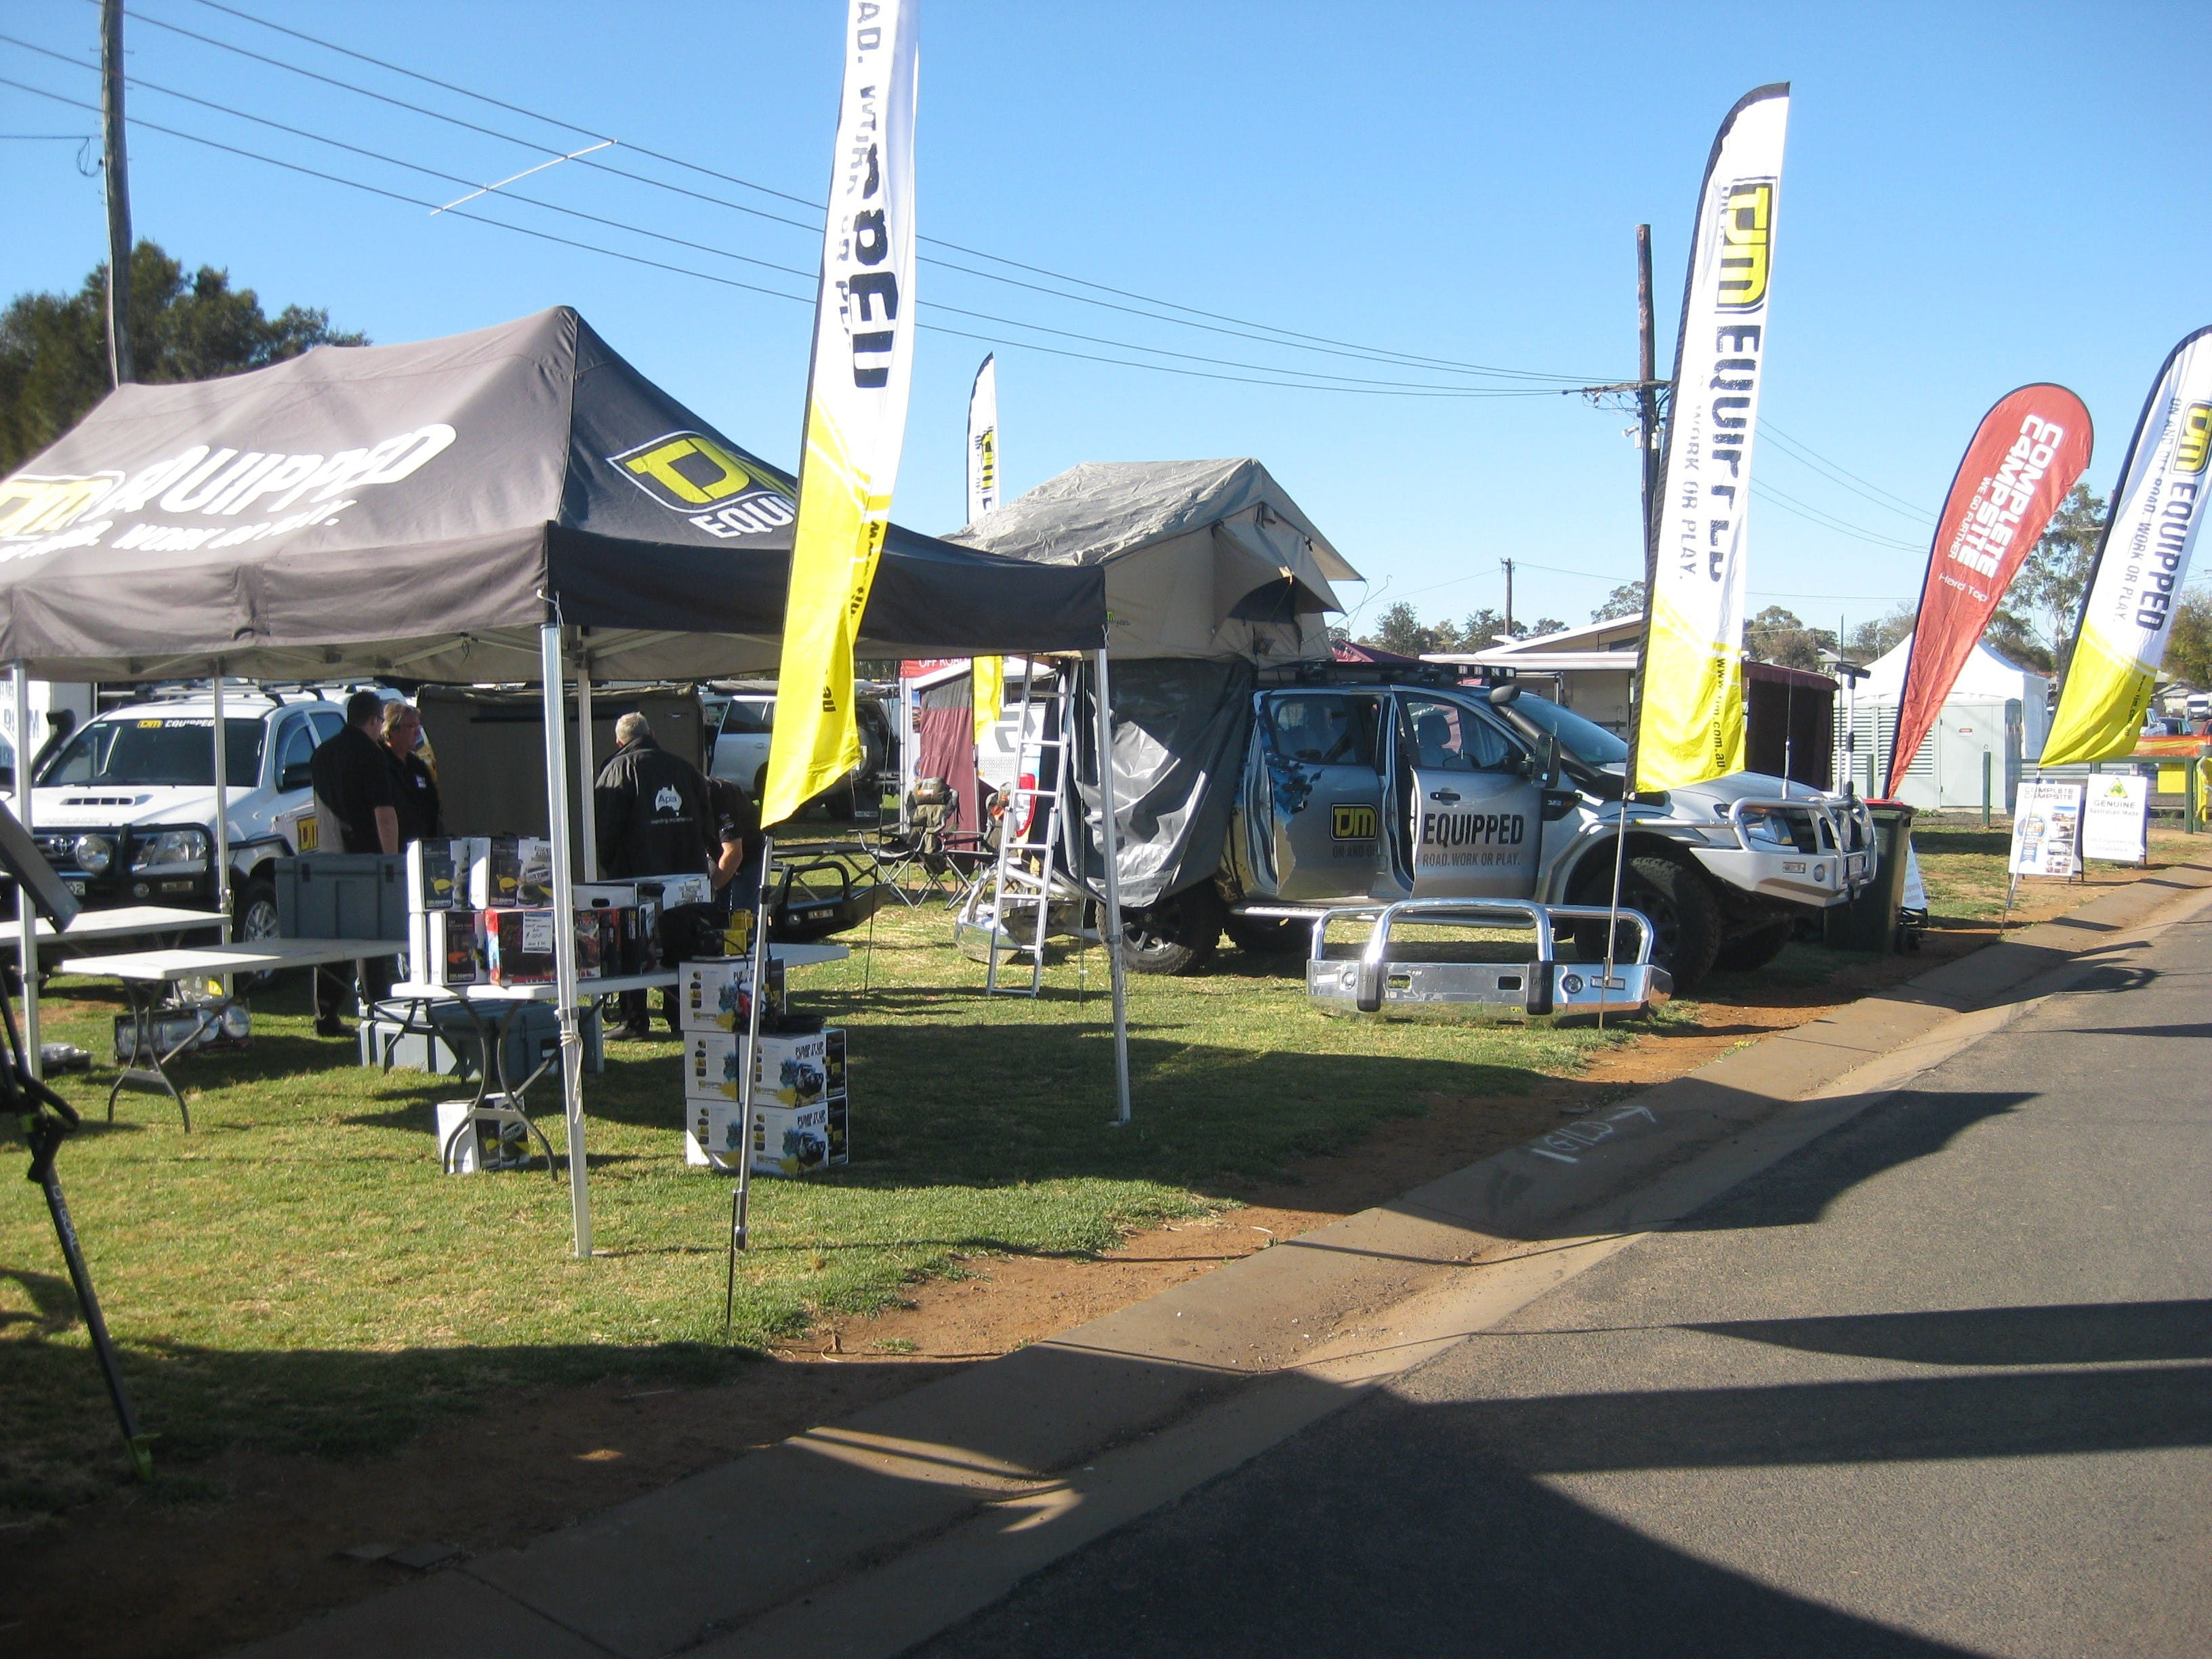 Orana Caravan Camping 4WD Fish and Boat Show - Sydney Tourism